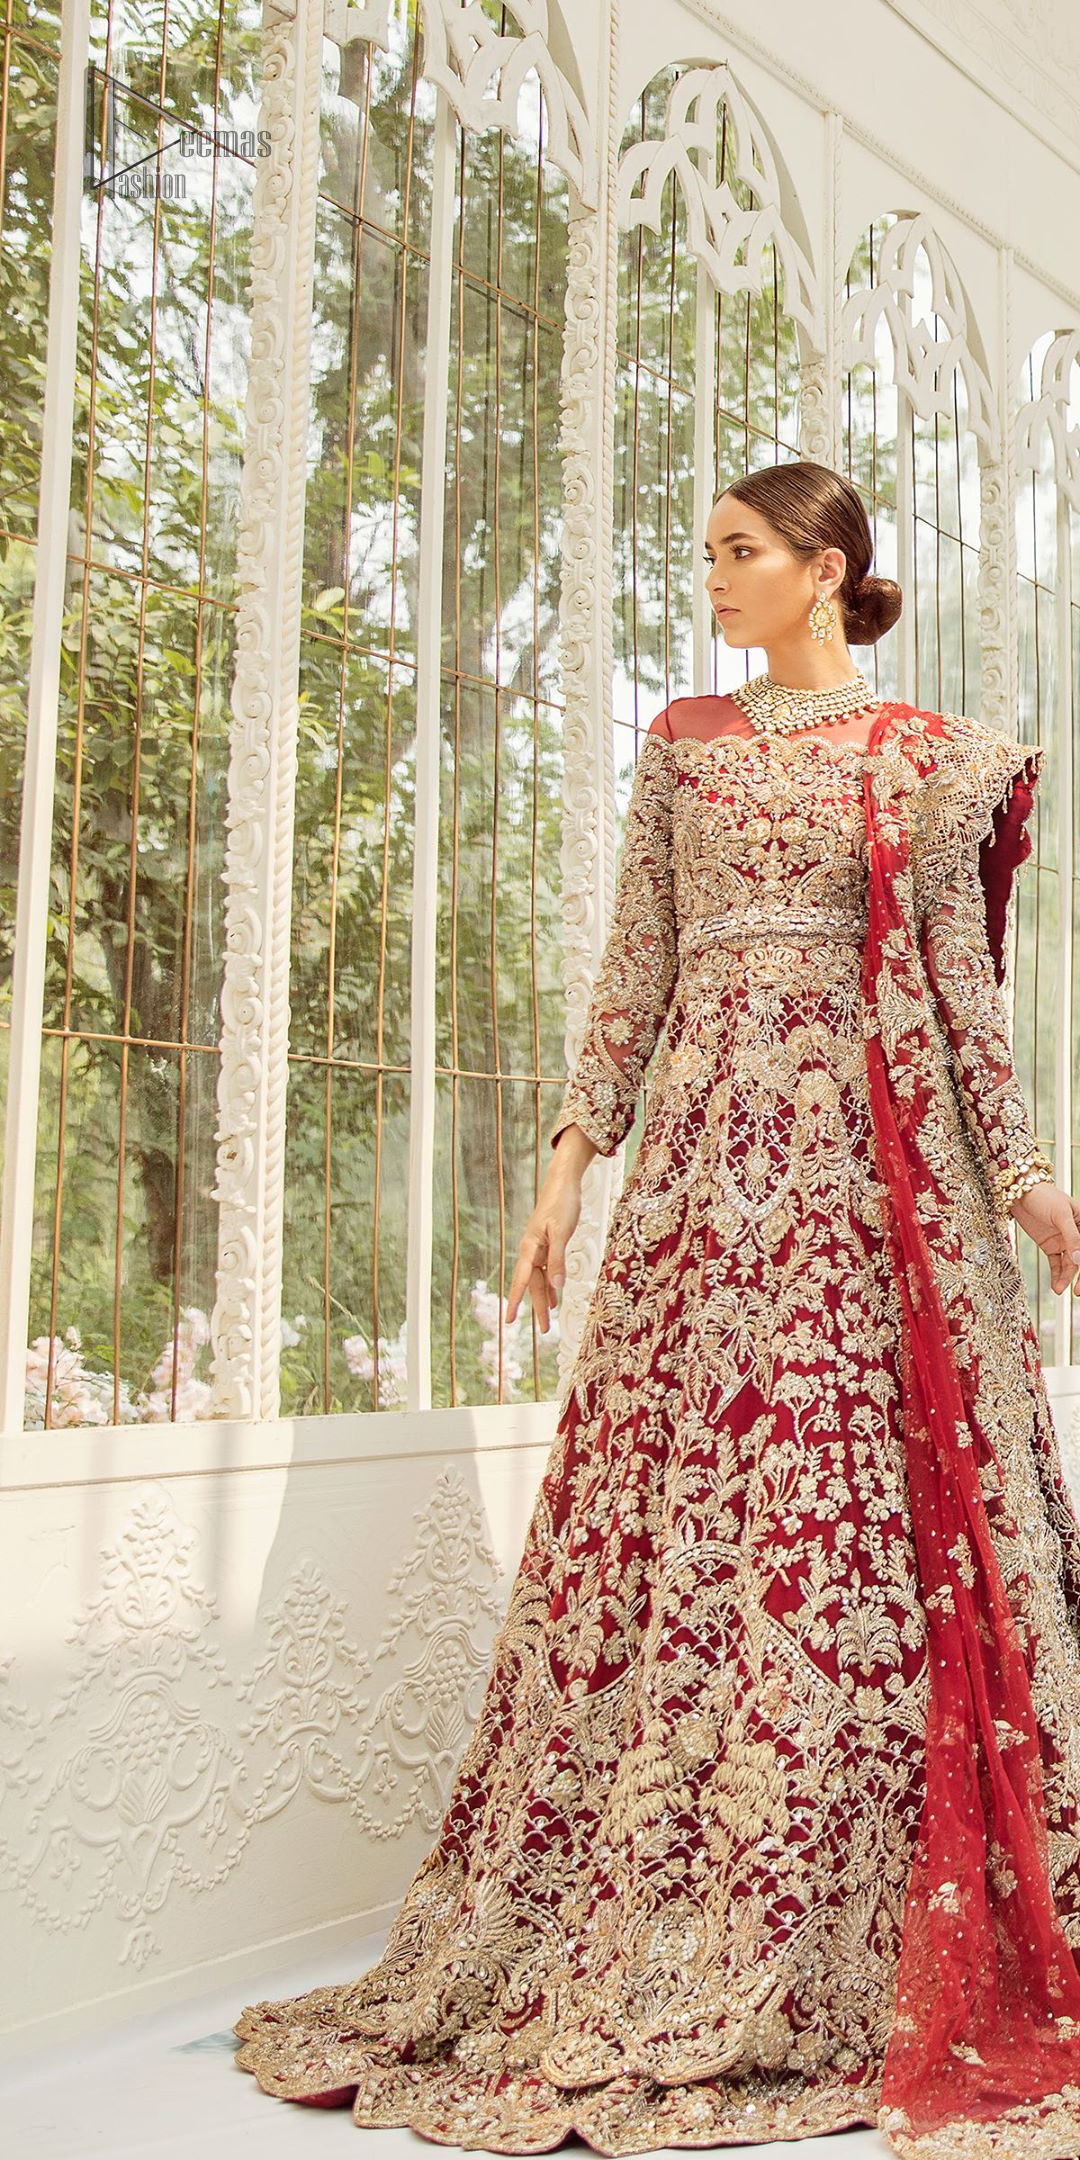 This bridal dress is perfect for your big day. Our bride makes a statement in this stunningly floraison, perfect blend of glamour and tradition with outstanding craftsmanship and gorgeous detailing. This floor length maxi is beautifully sculptured floral jhaal, floral bunches and thick scalloped hemline done with light golden kora, dabka, tilla and sequins embroidery. Exude elegance with red lehenga finessed with beautiful embellished scalloped bottom with zardosi work. The red net dupatta with chann and finishing all around the edges makes the look complete.